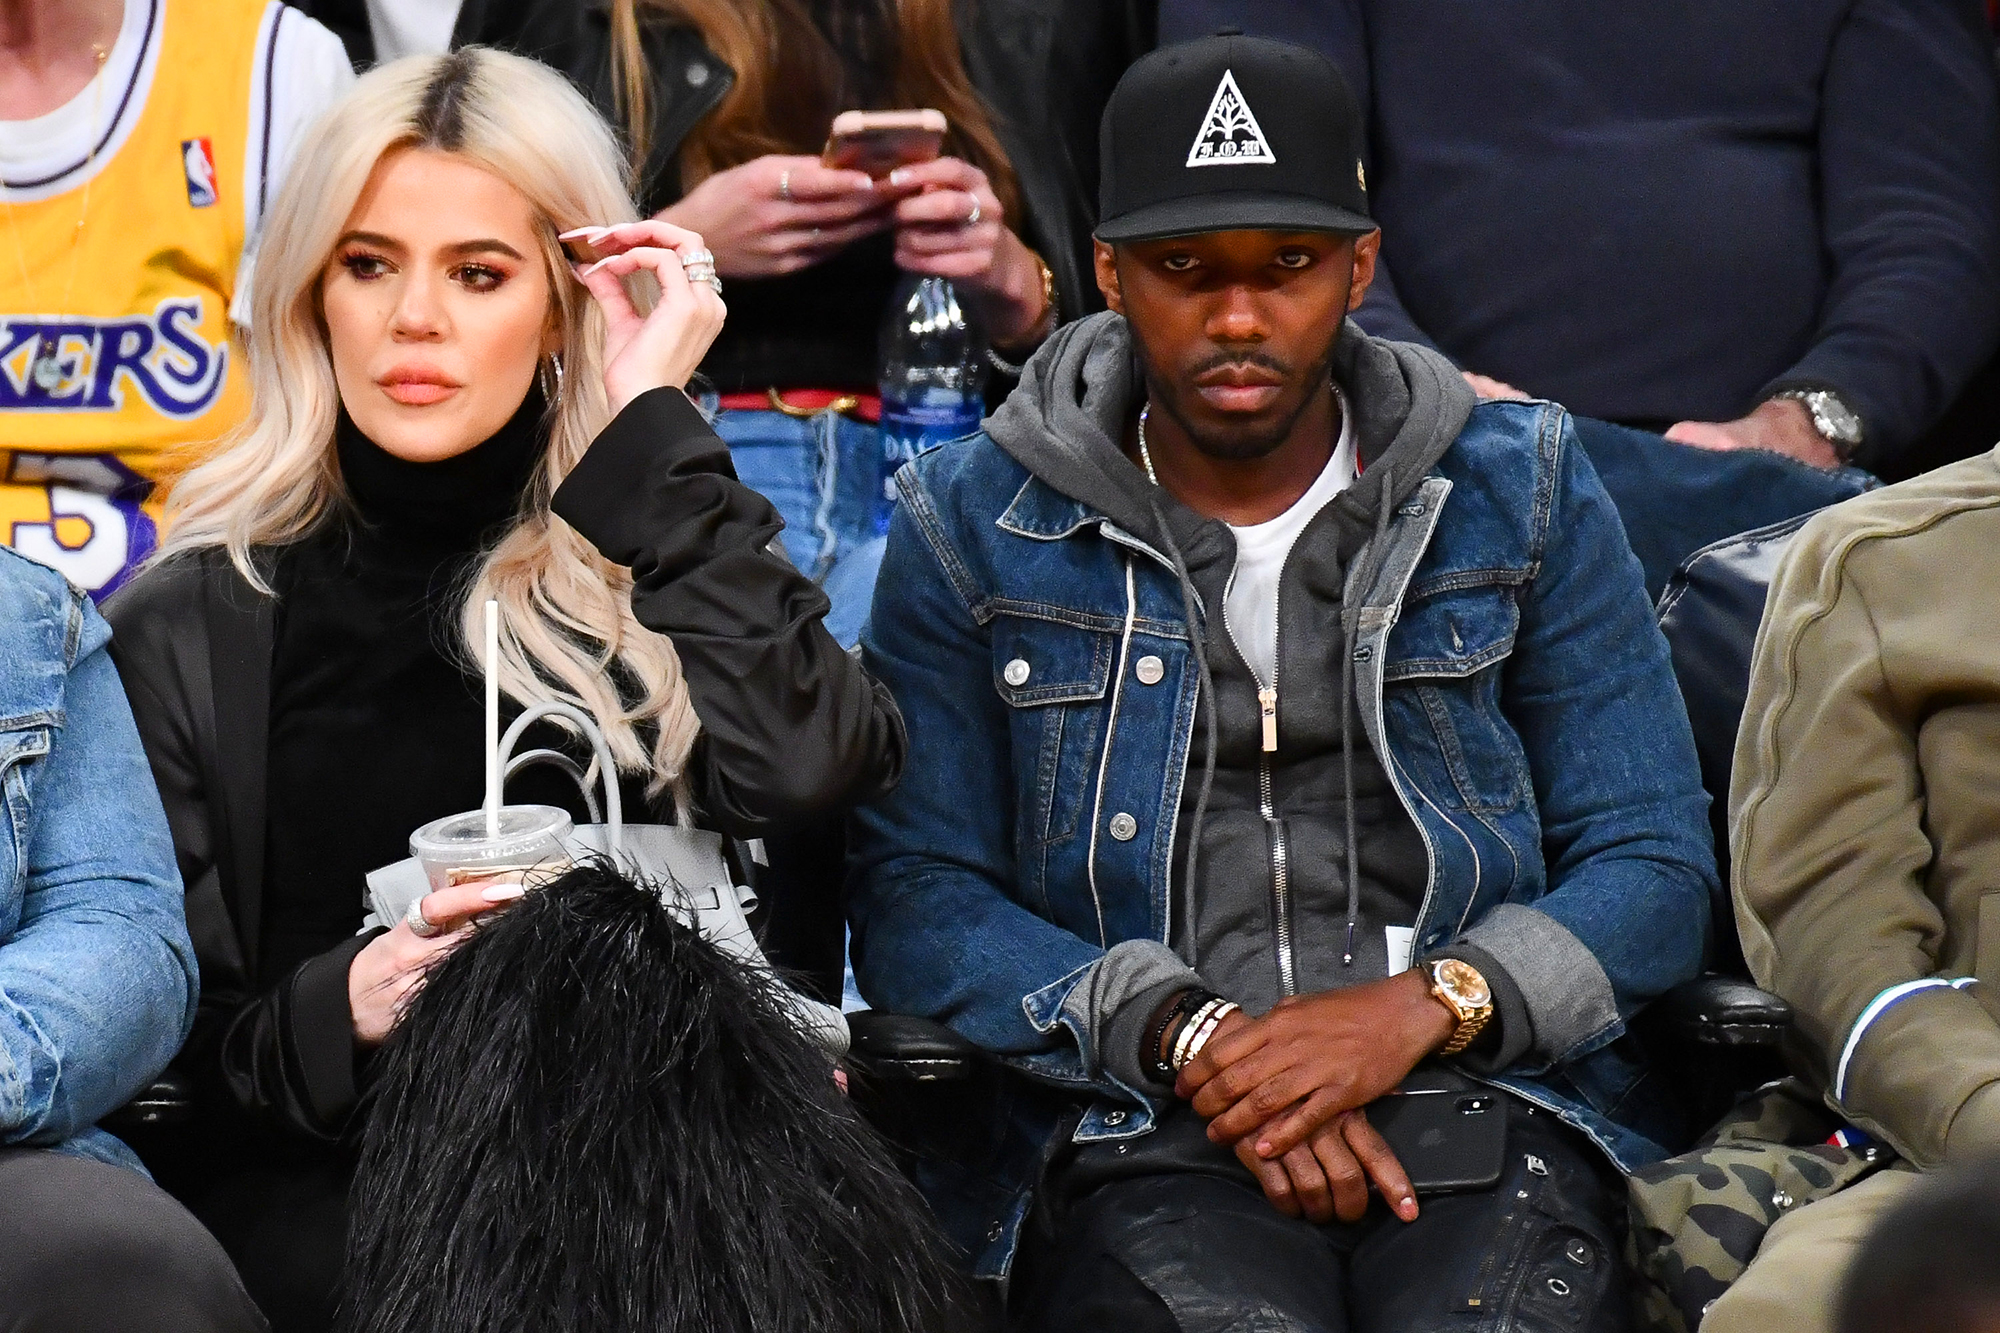 """Khloe Kardashian Supports Beau Tristan Thompson Courtside at Cleveland Cavaliers Game - The Good American founder sipped a beverage as she watched her boyfriend of more than two years score 15 points and rack up 14 rebounds. A source told Us Weekly last month that the pair — who stayed together despite Thompson's infidelity — """"are trying for another baby."""""""